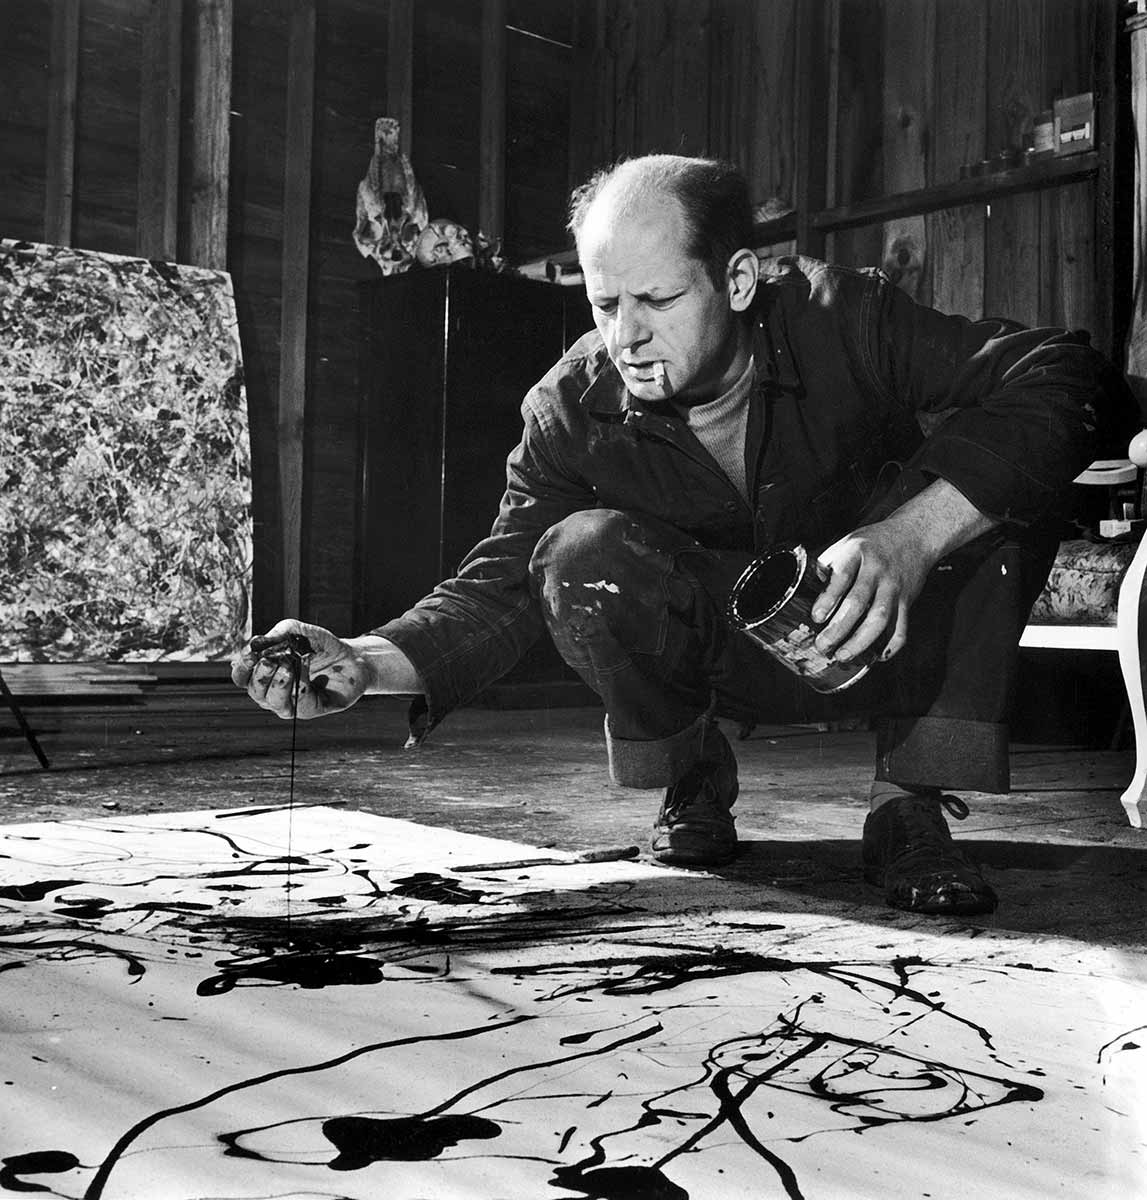 Black and white photo of balding, middle-aged man crouches by canvas spread on the floor. He has a cigarette in his mouth, a paint can in one hand. His other hand seems to be covered in paint. He is frowning intently at the canvas, which has a few splotches of dark paint on it. - click to view larger image